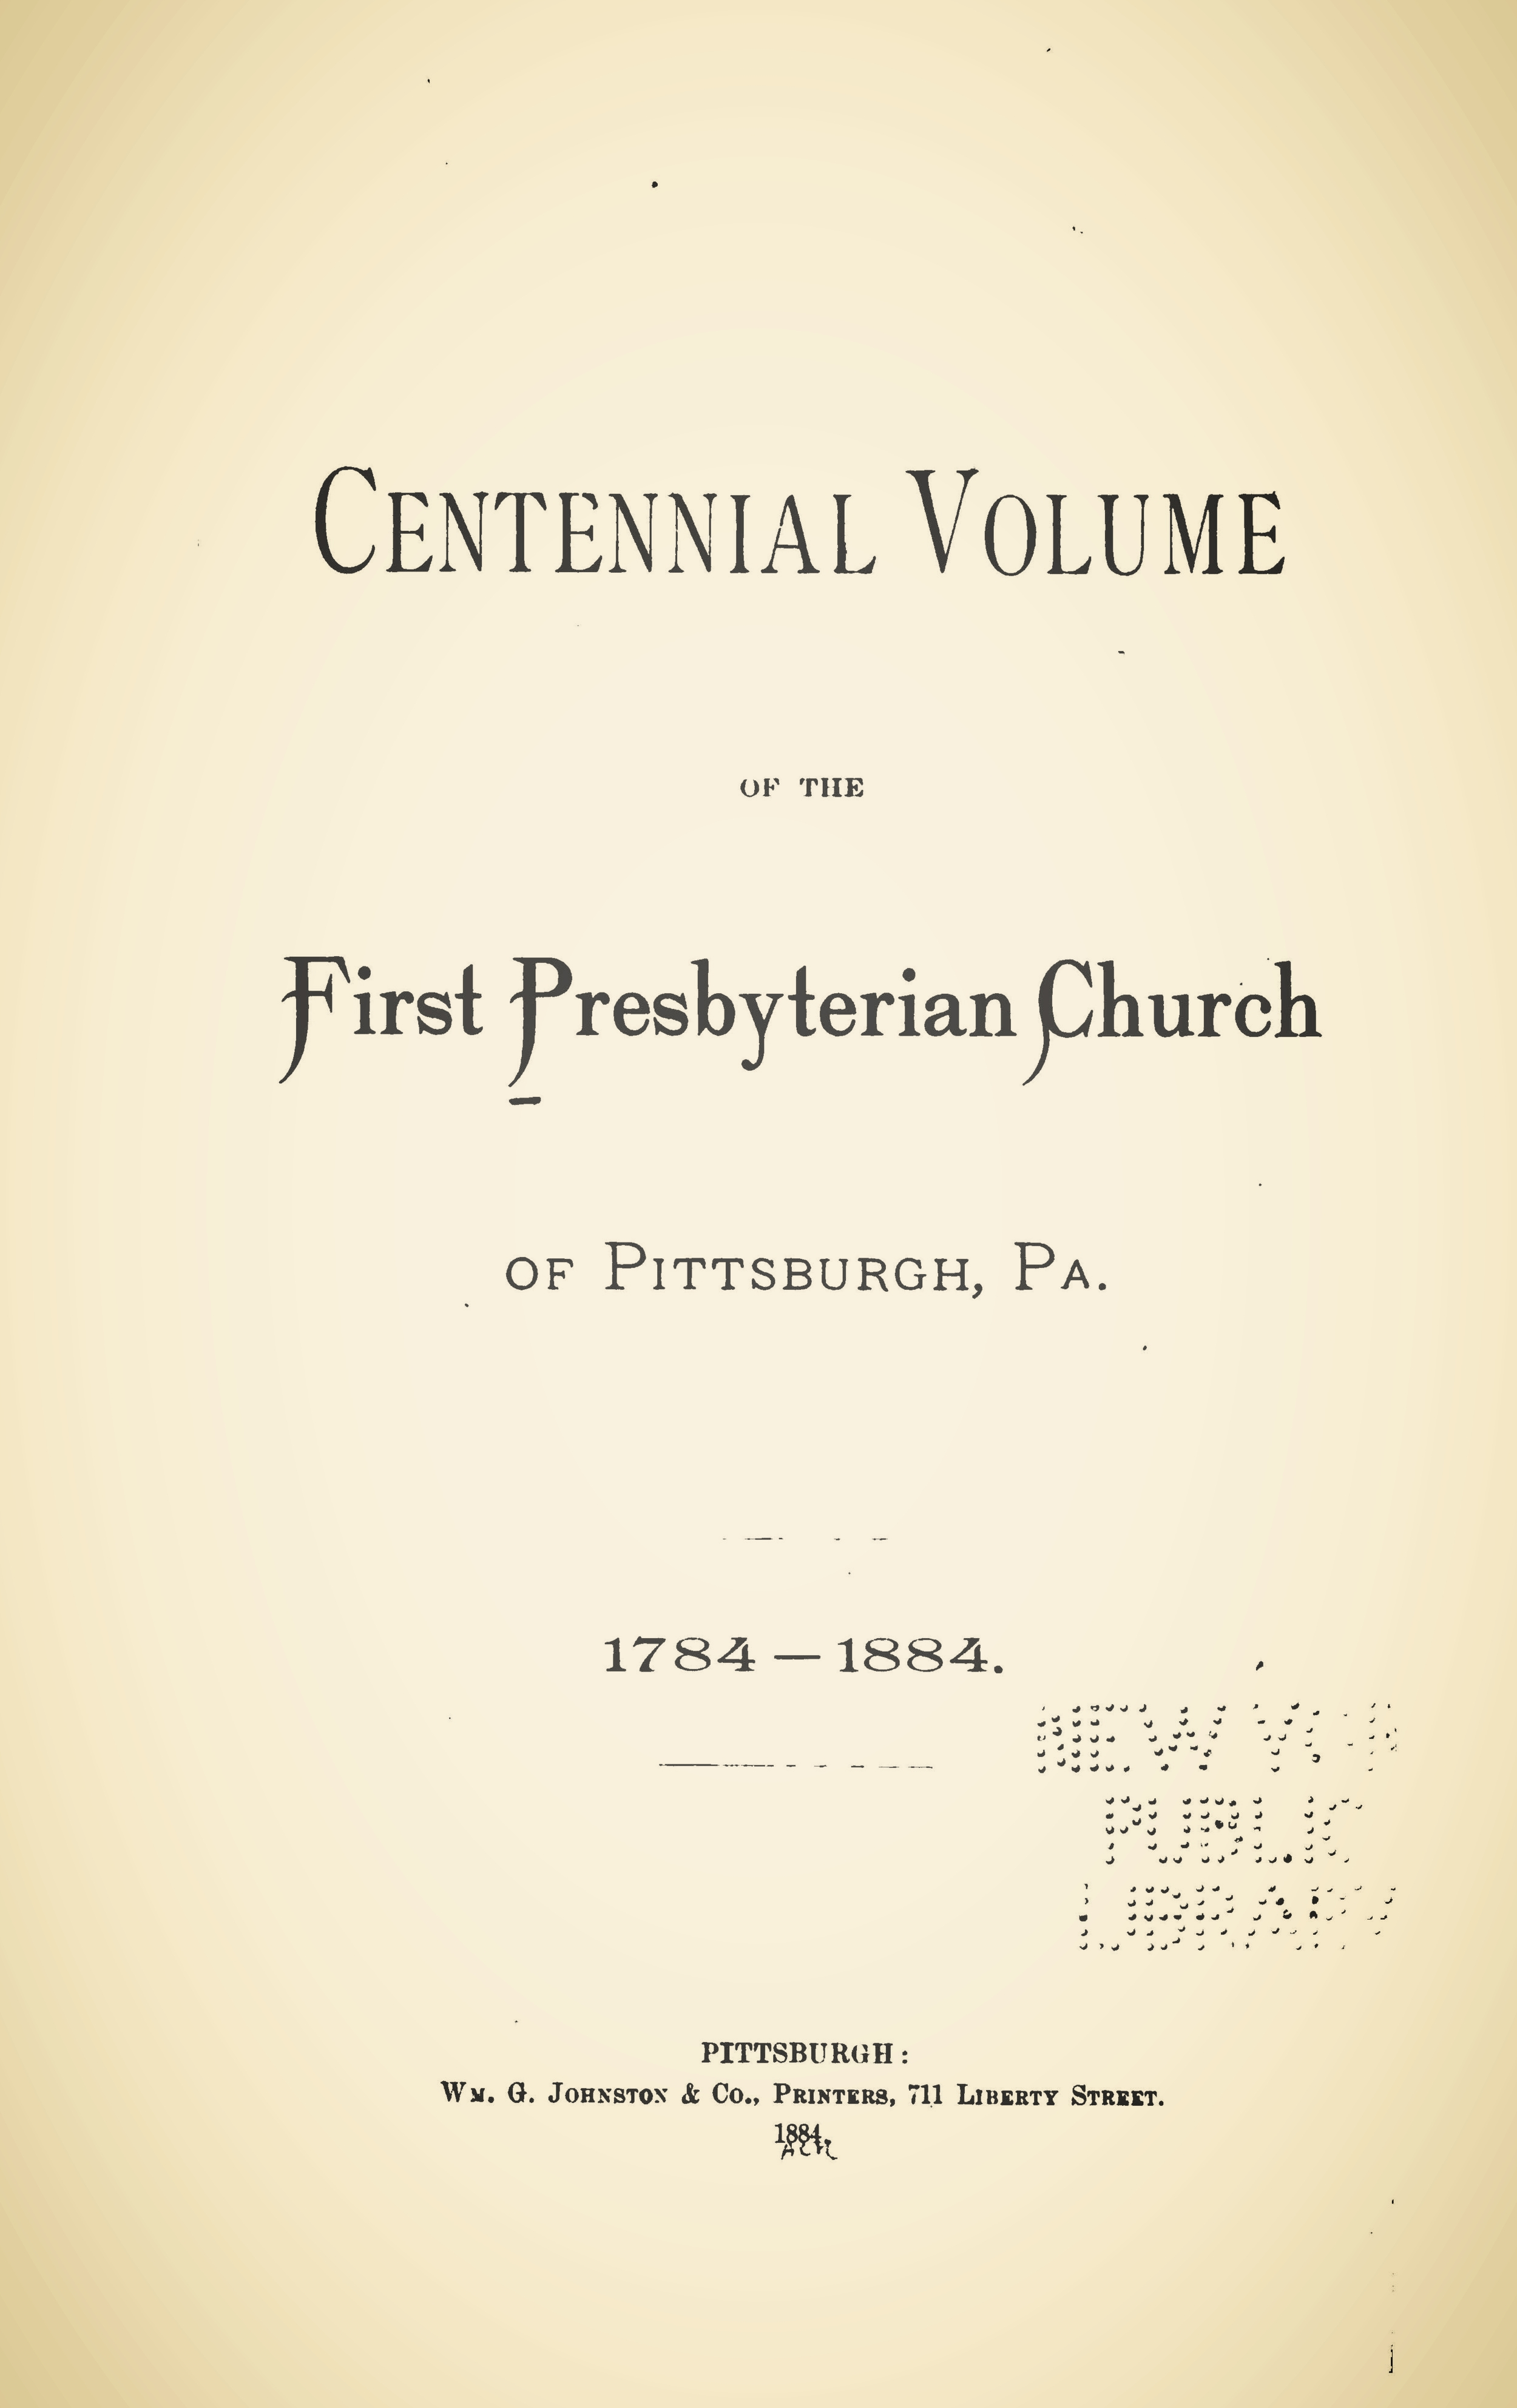 Scovel, Sylvester Fithian, Centennial Volume of the First Presbyterian Church of Pittsburgh, PA., 1784-1884 Title Page.jpg